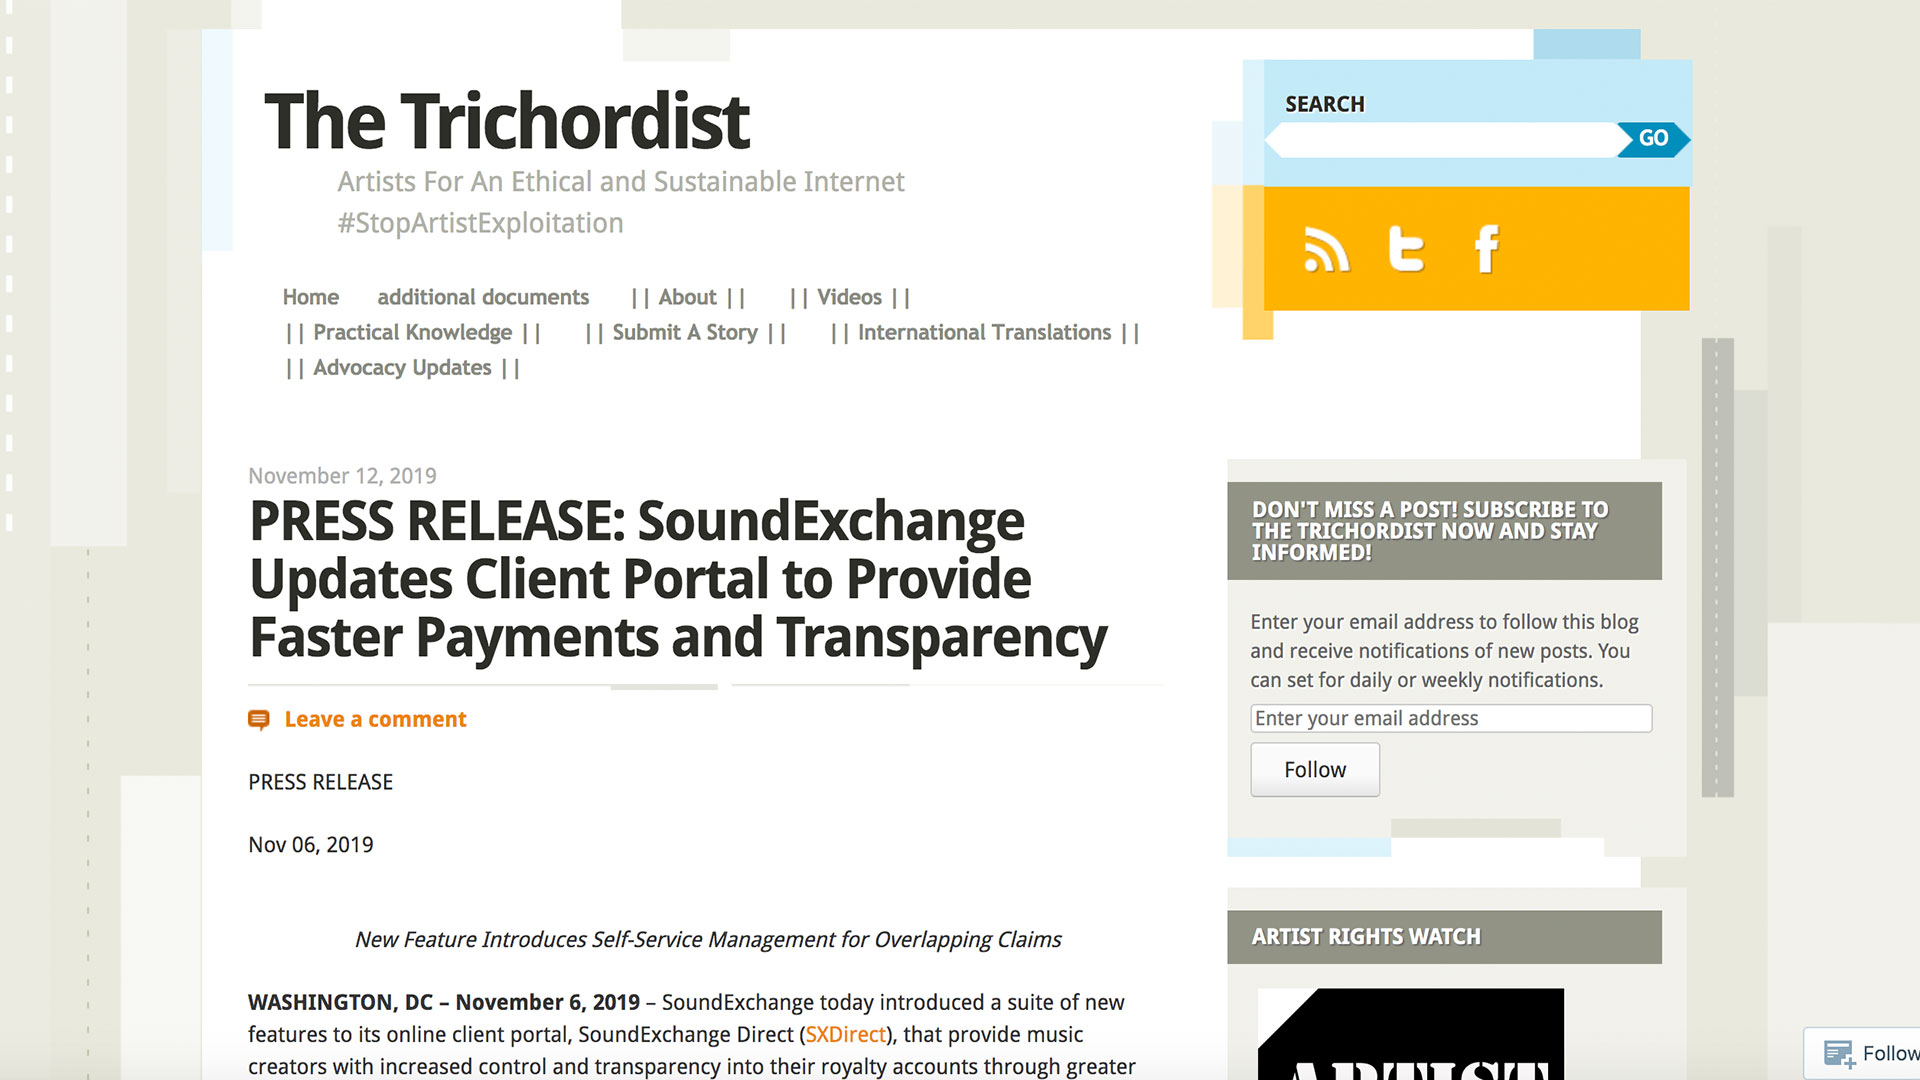 Fairness Rocks News PRESS RELEASE: SoundExchange Updates Client Portal to Provide Faster Payments and Transparency